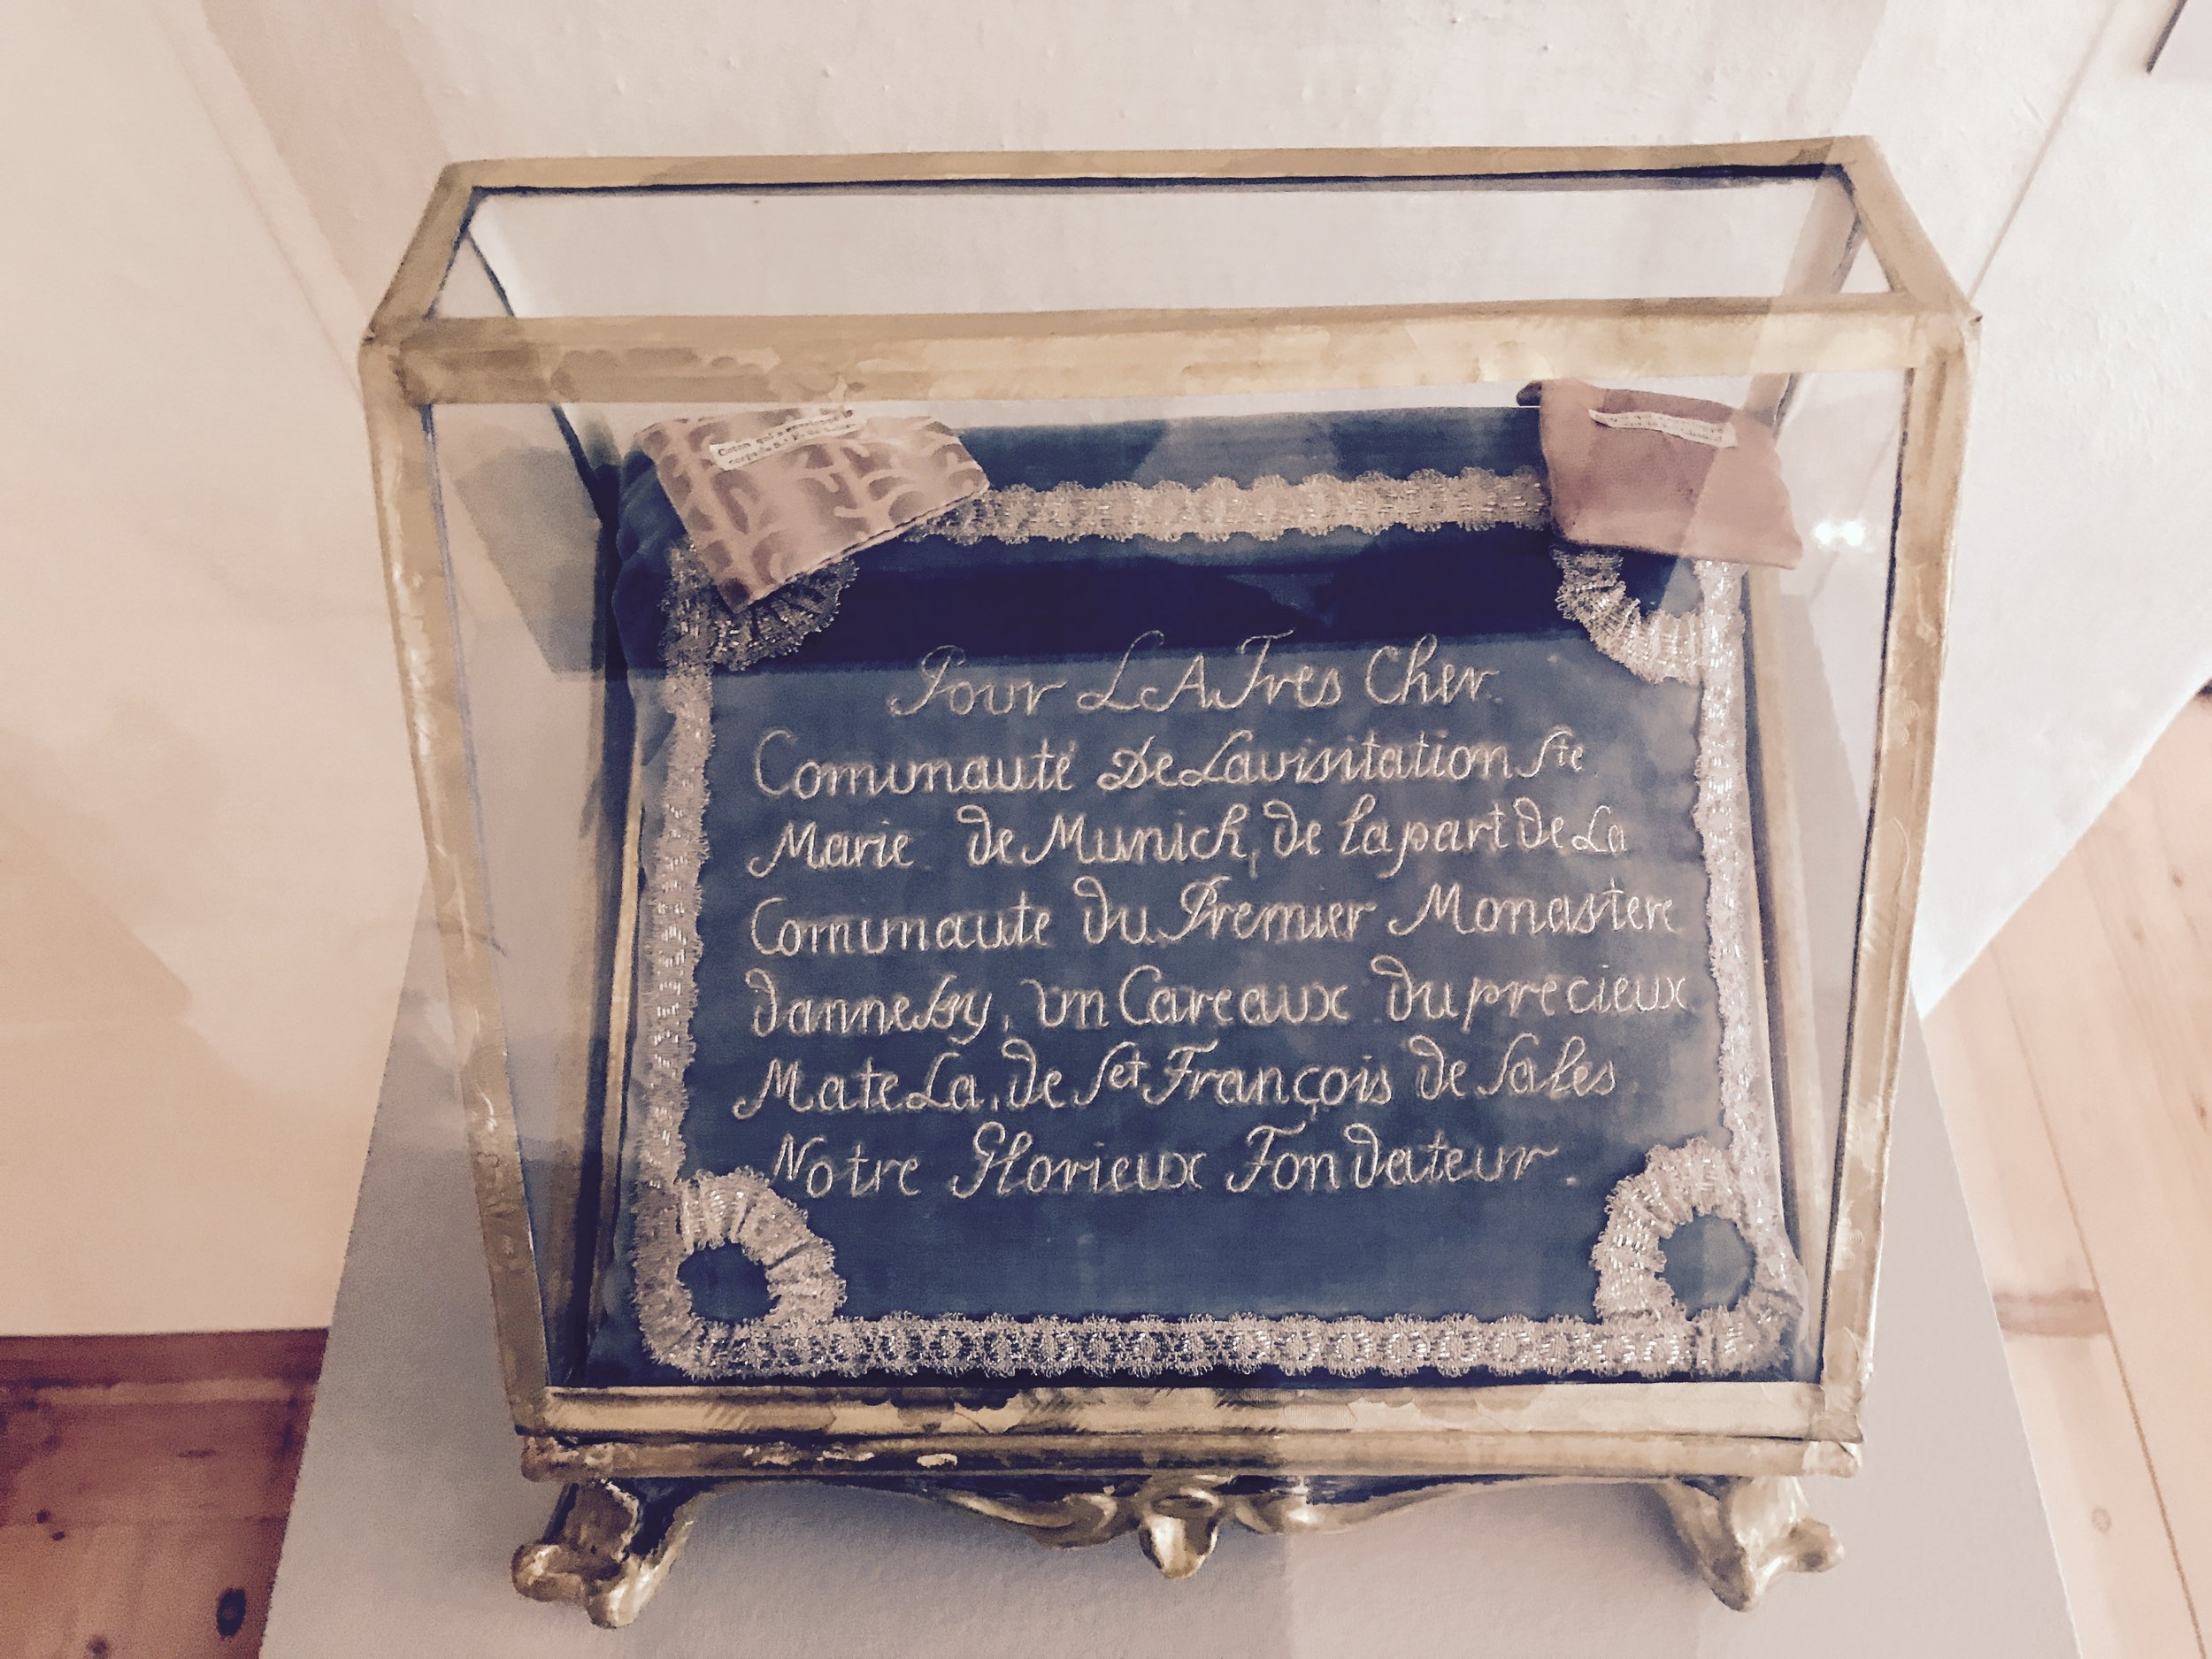 Founding charter of the abbey